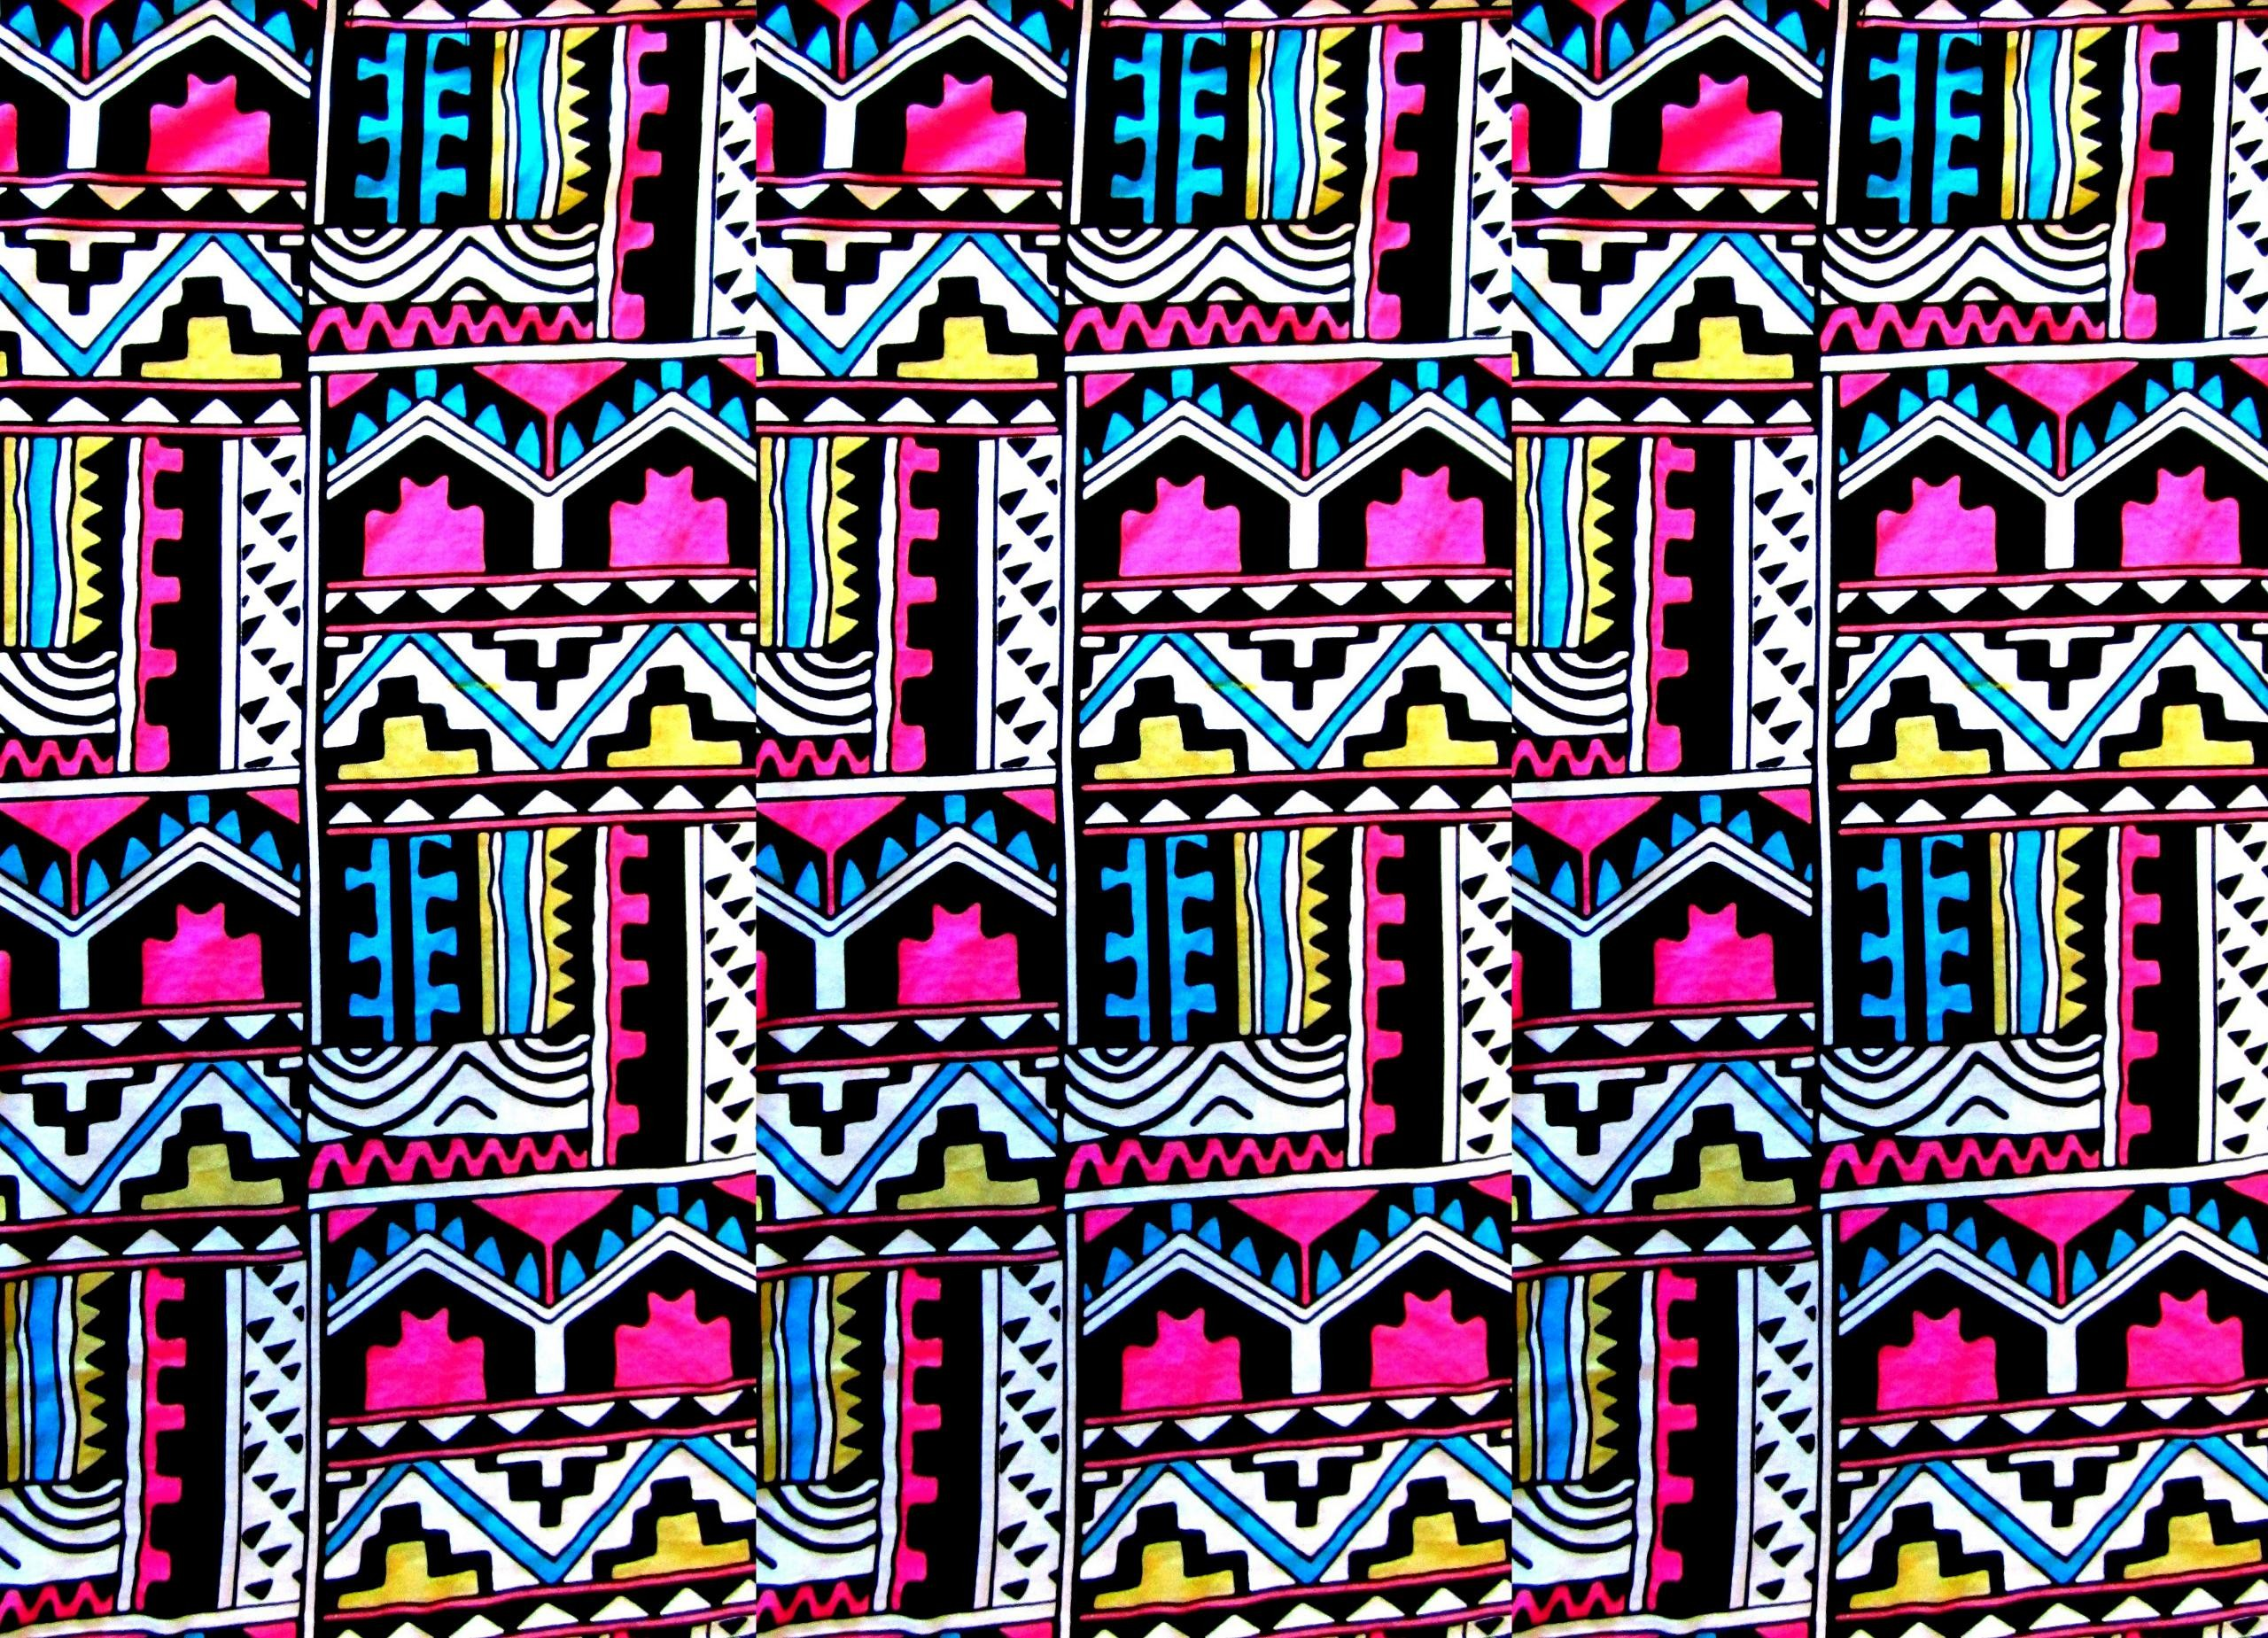 Iphone X Wallpaper With Border Tribal Background 183 ① Download Free Cool High Resolution